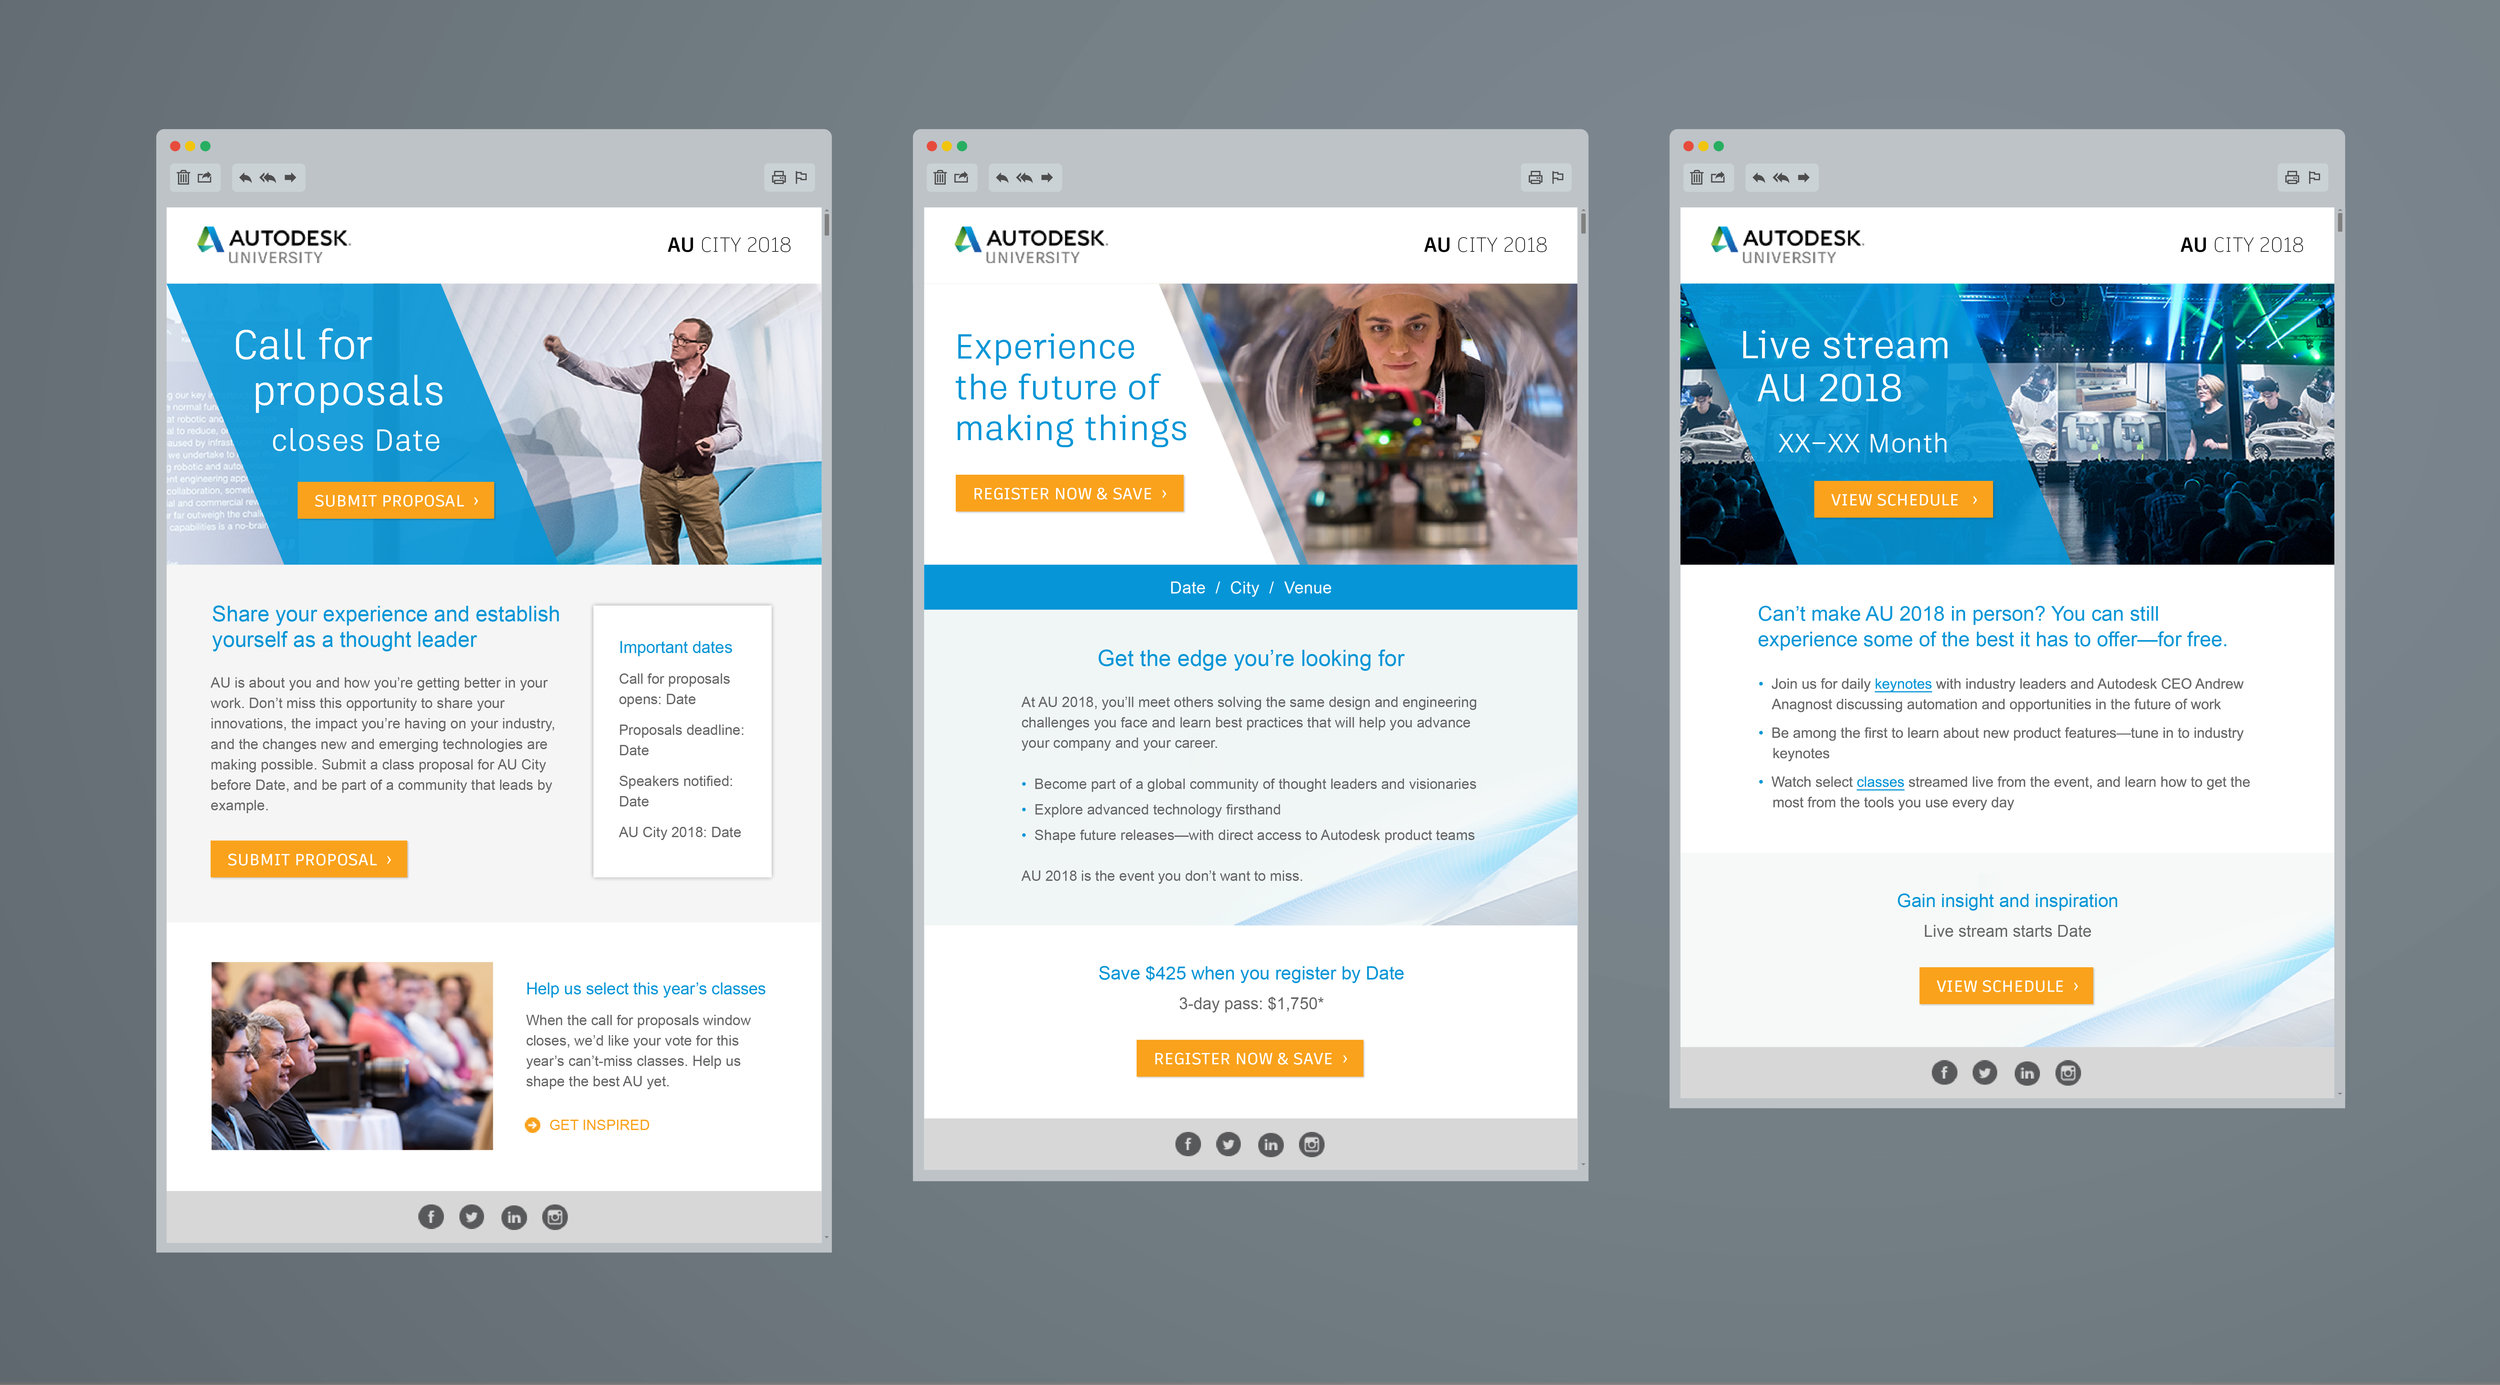 Autodesk 2018 Email Template:  From generating awareness to driving registrations, this flexible email template design supports the rapid creation and deployment of industry event emails in 18 countries.